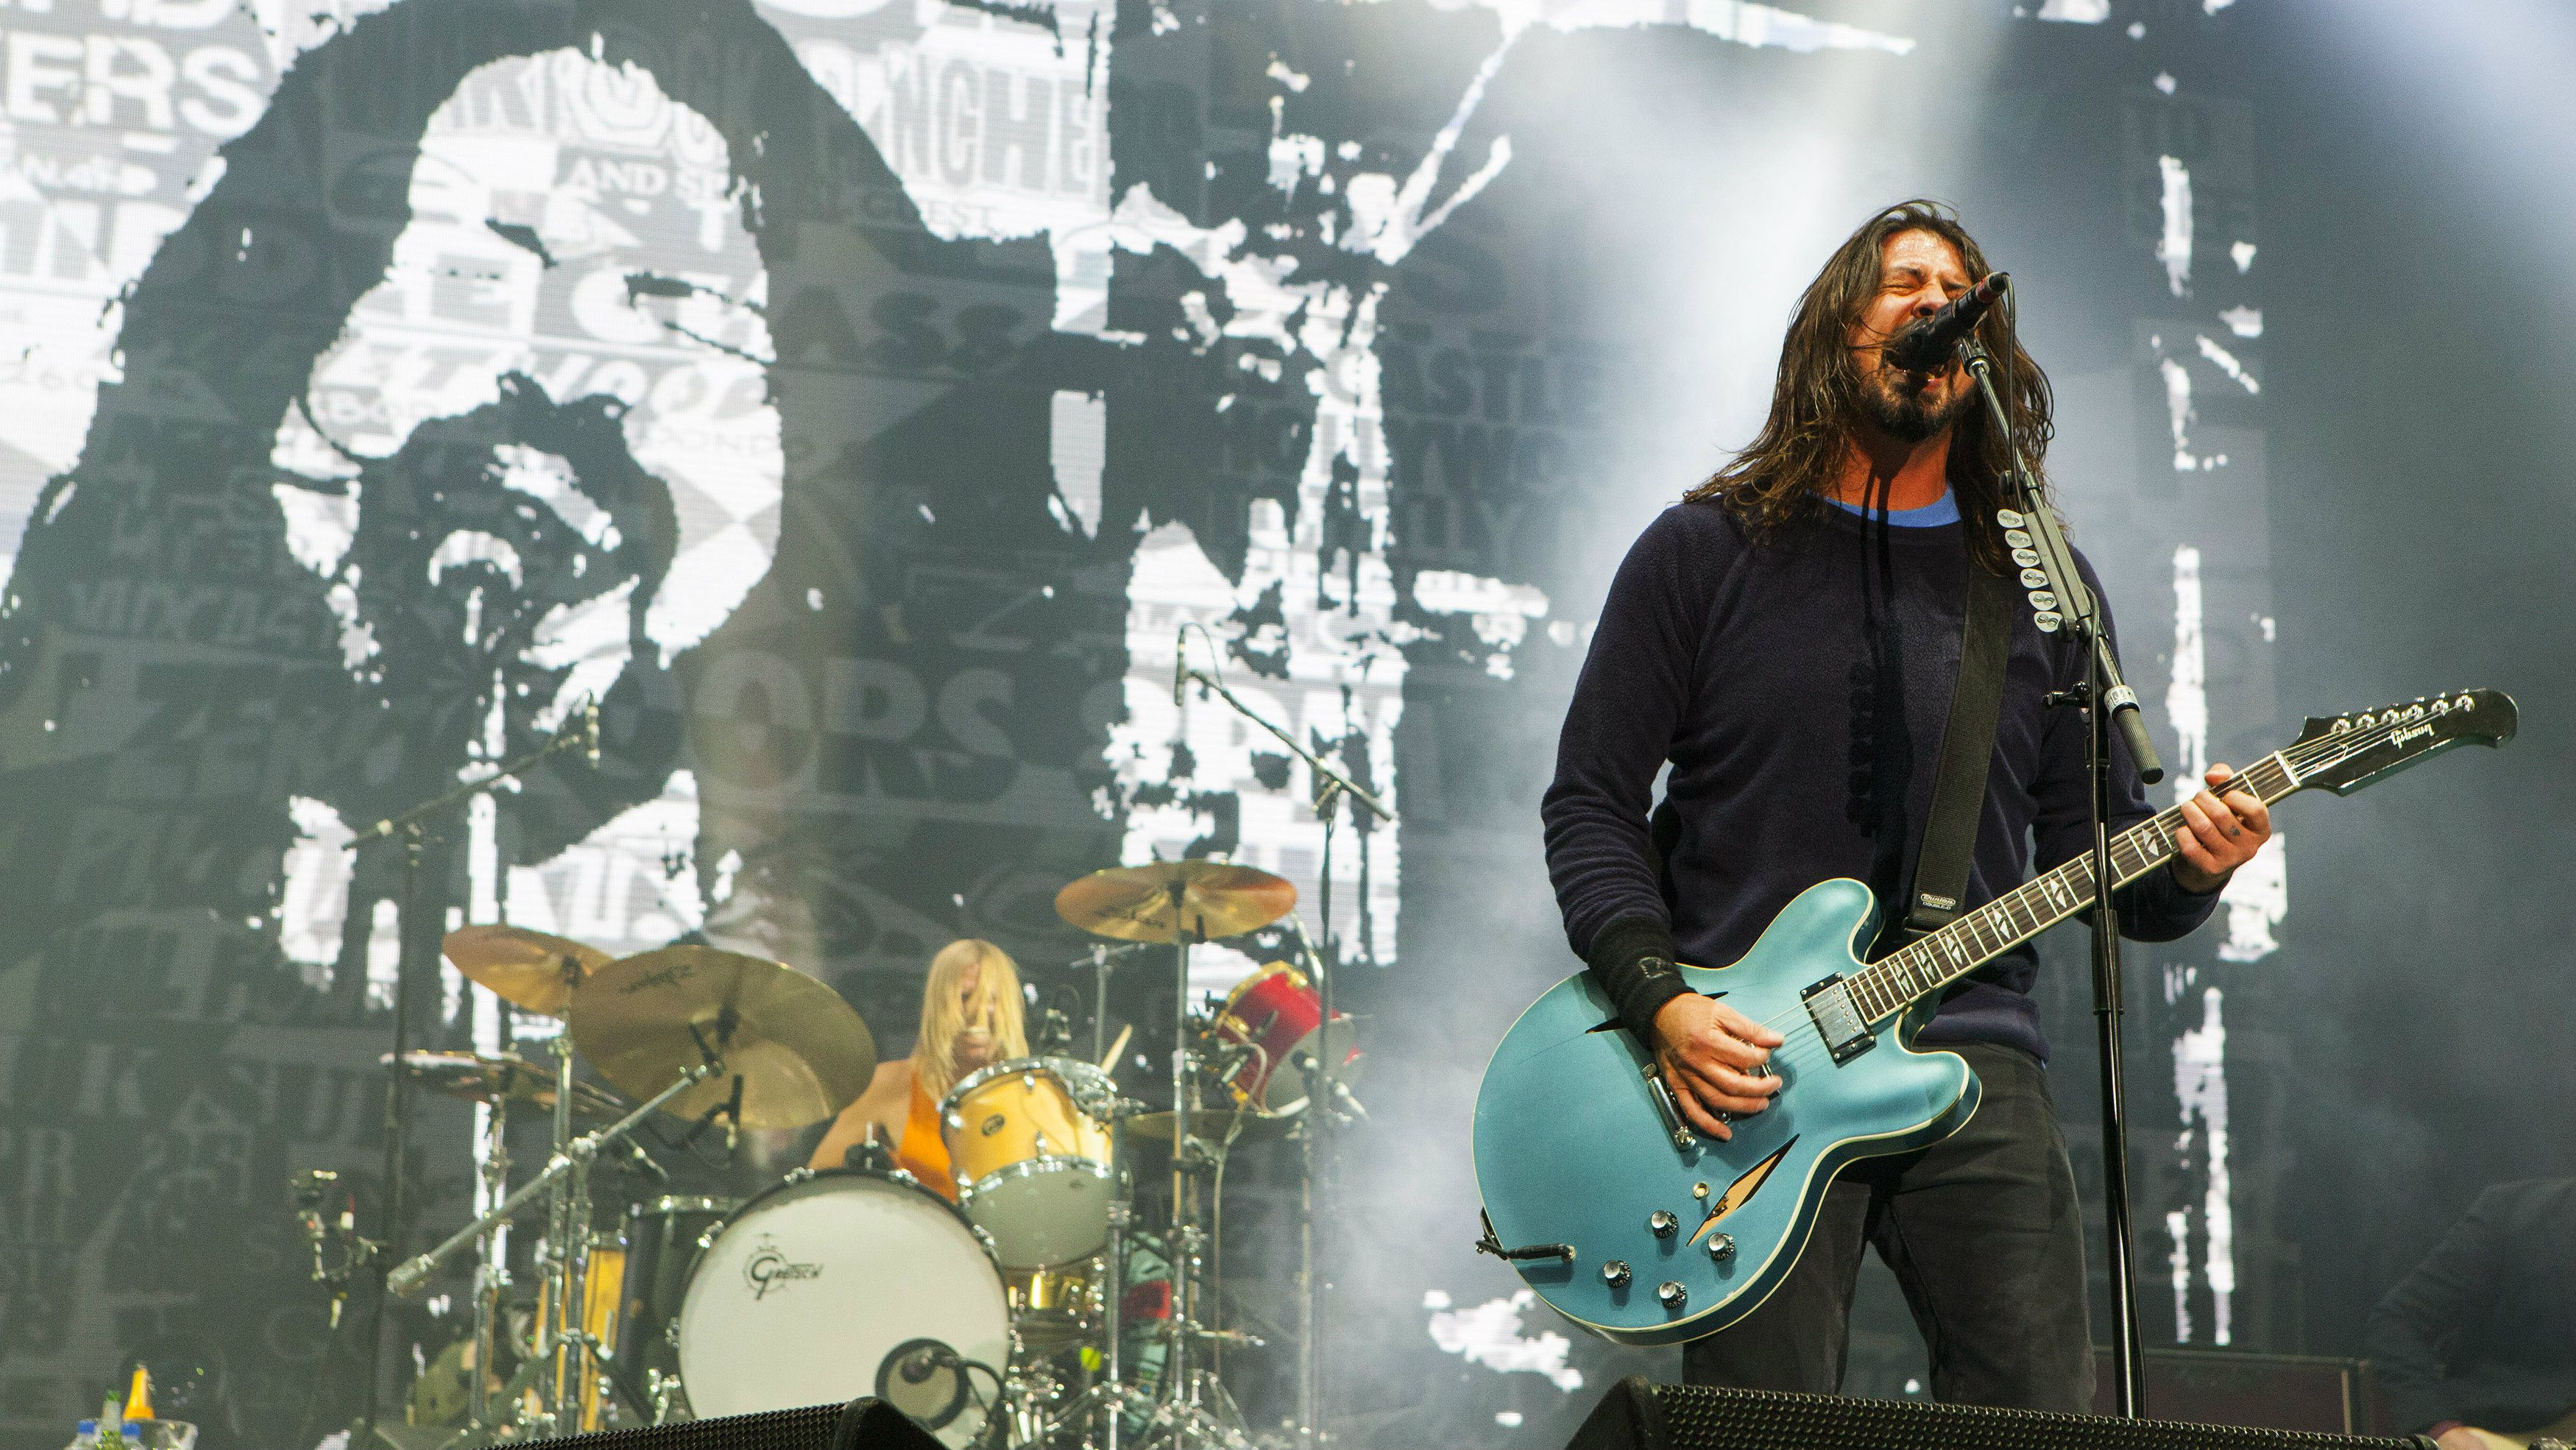 Taylor Hawkins, Dave Grohl and Nate Mendel of the Foo Fighters